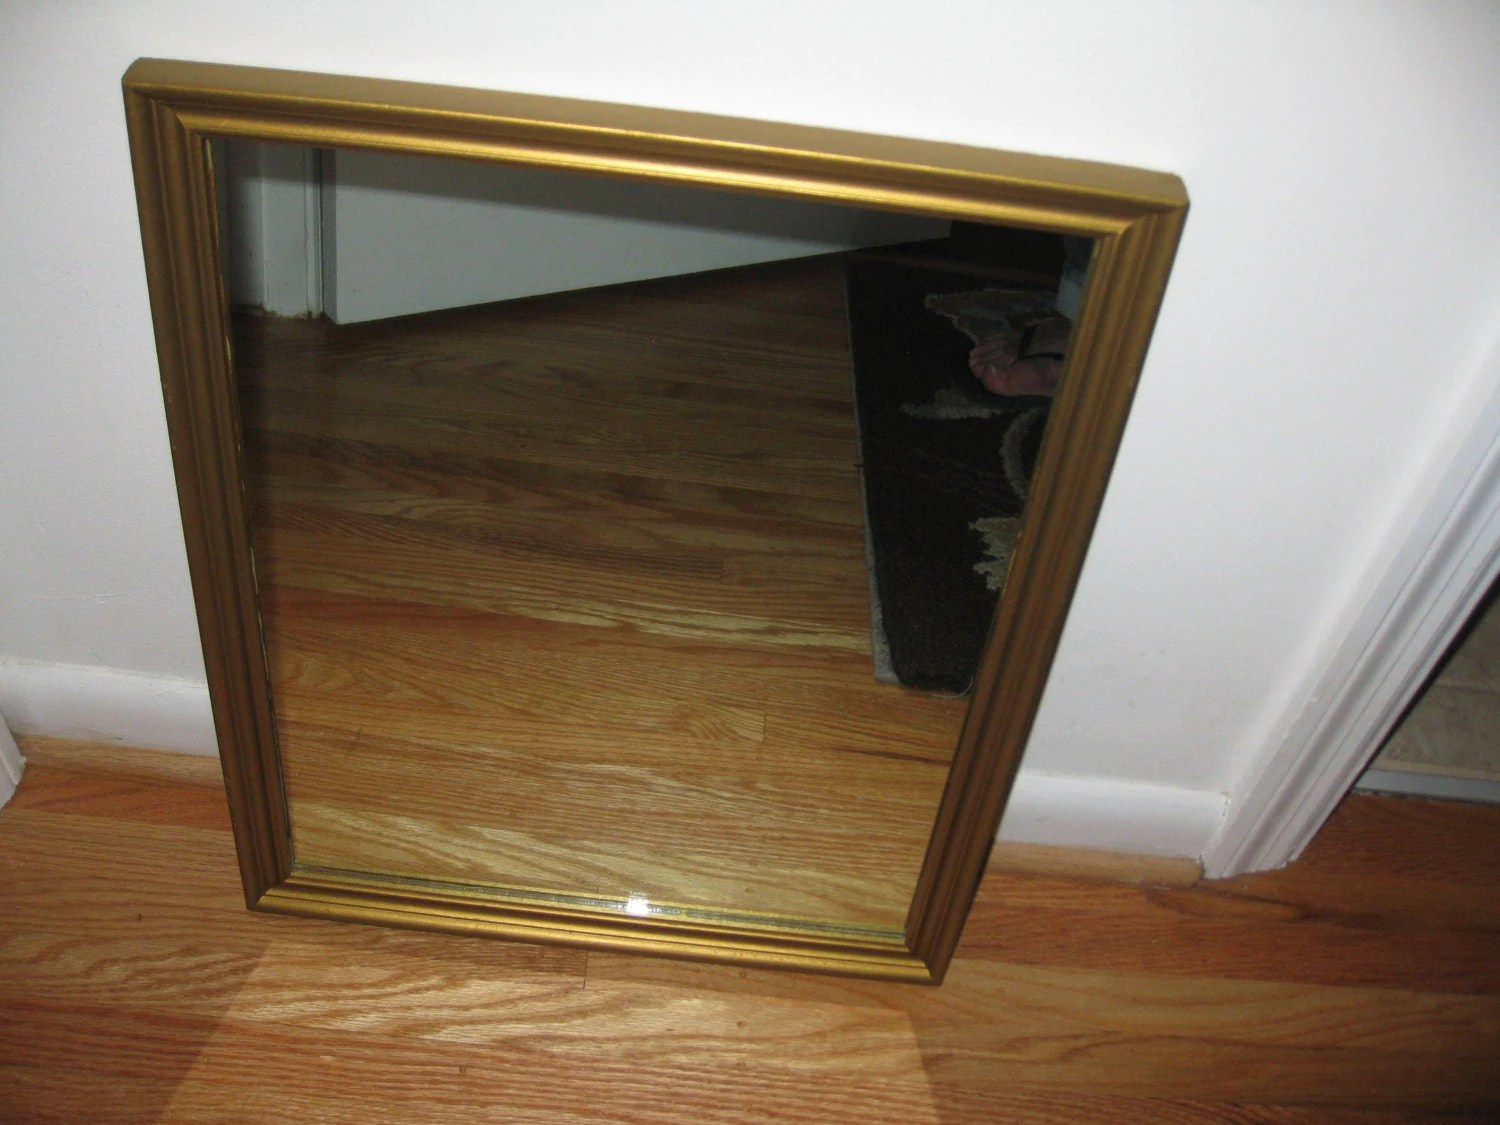 ANTIQUE WALL MIRROR 1940's Goldtone Wood Frame 15